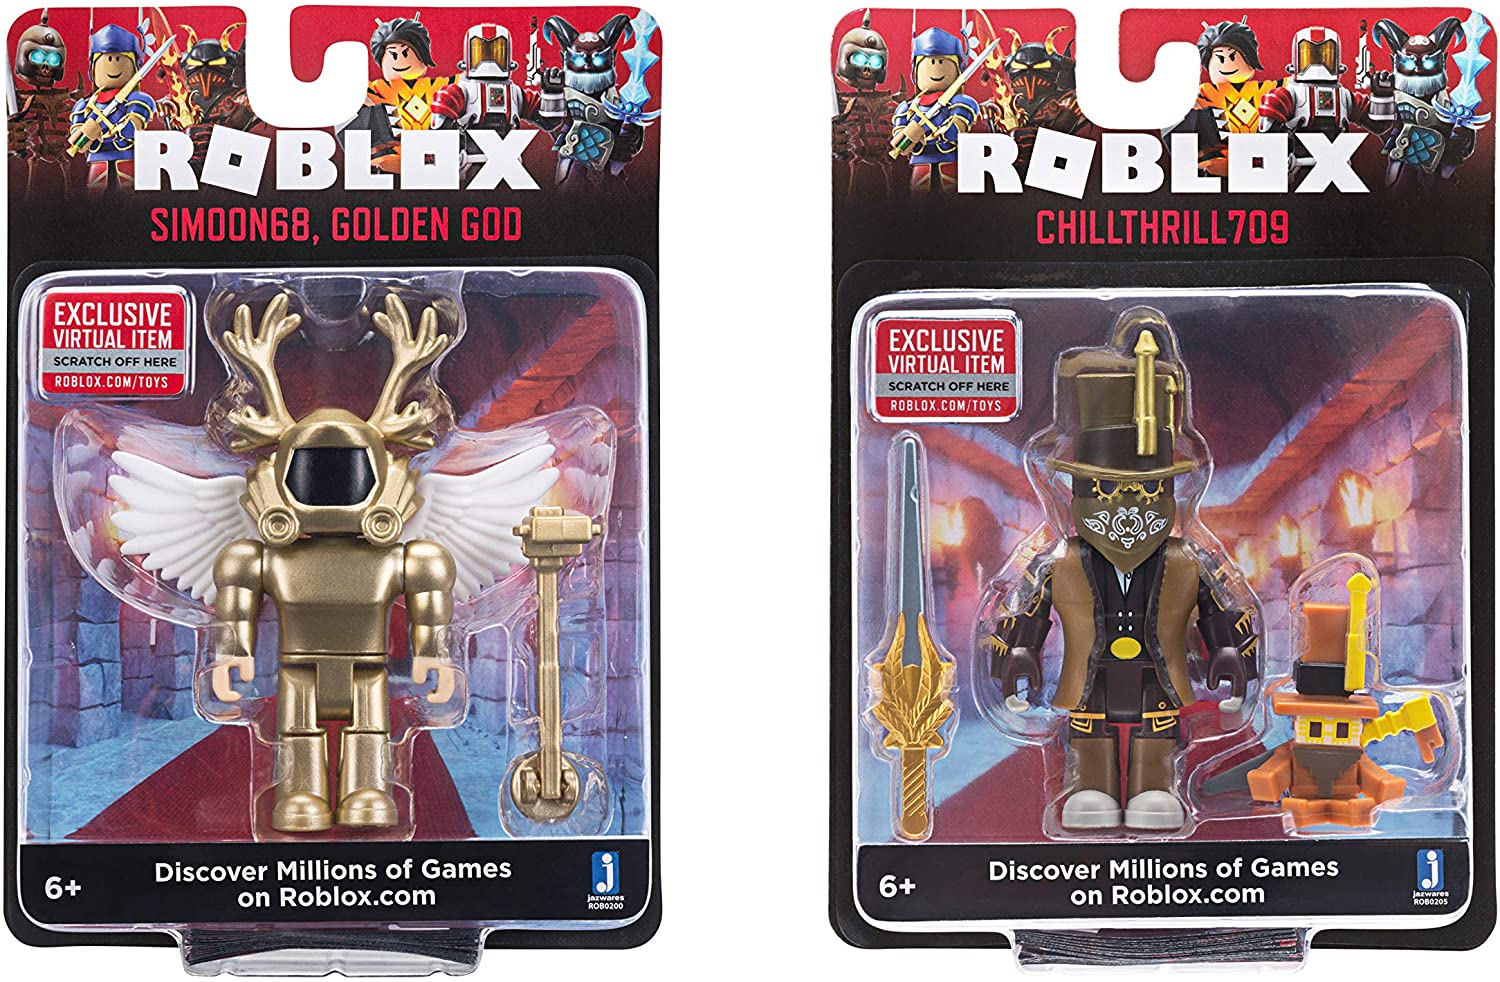 5 New Rare Codes Build A Boat For Treasure Roblox Amazon Com Roblox Action Collection Simoon68 Golden God Chillthrill709 Two Figure Bundle Includes 2 Exclusive Virtual Items Toys Games